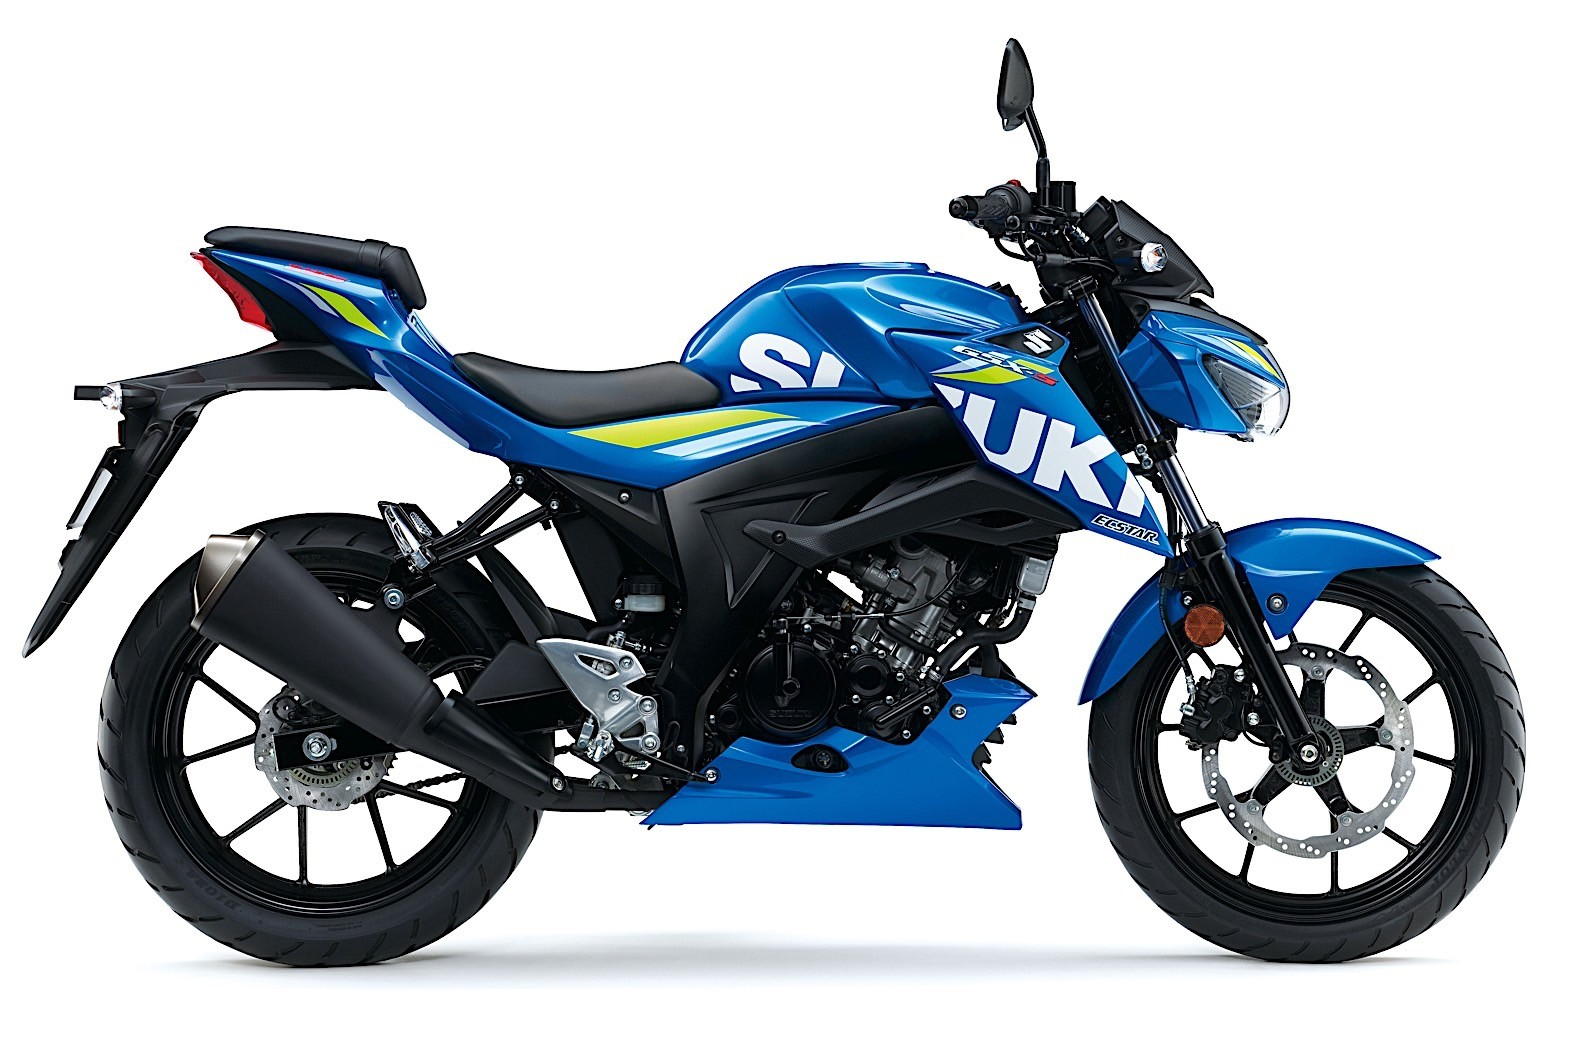 2019-suzuki-motorcycles-shine-in-new-colors-at-the-motorcycle-live-22